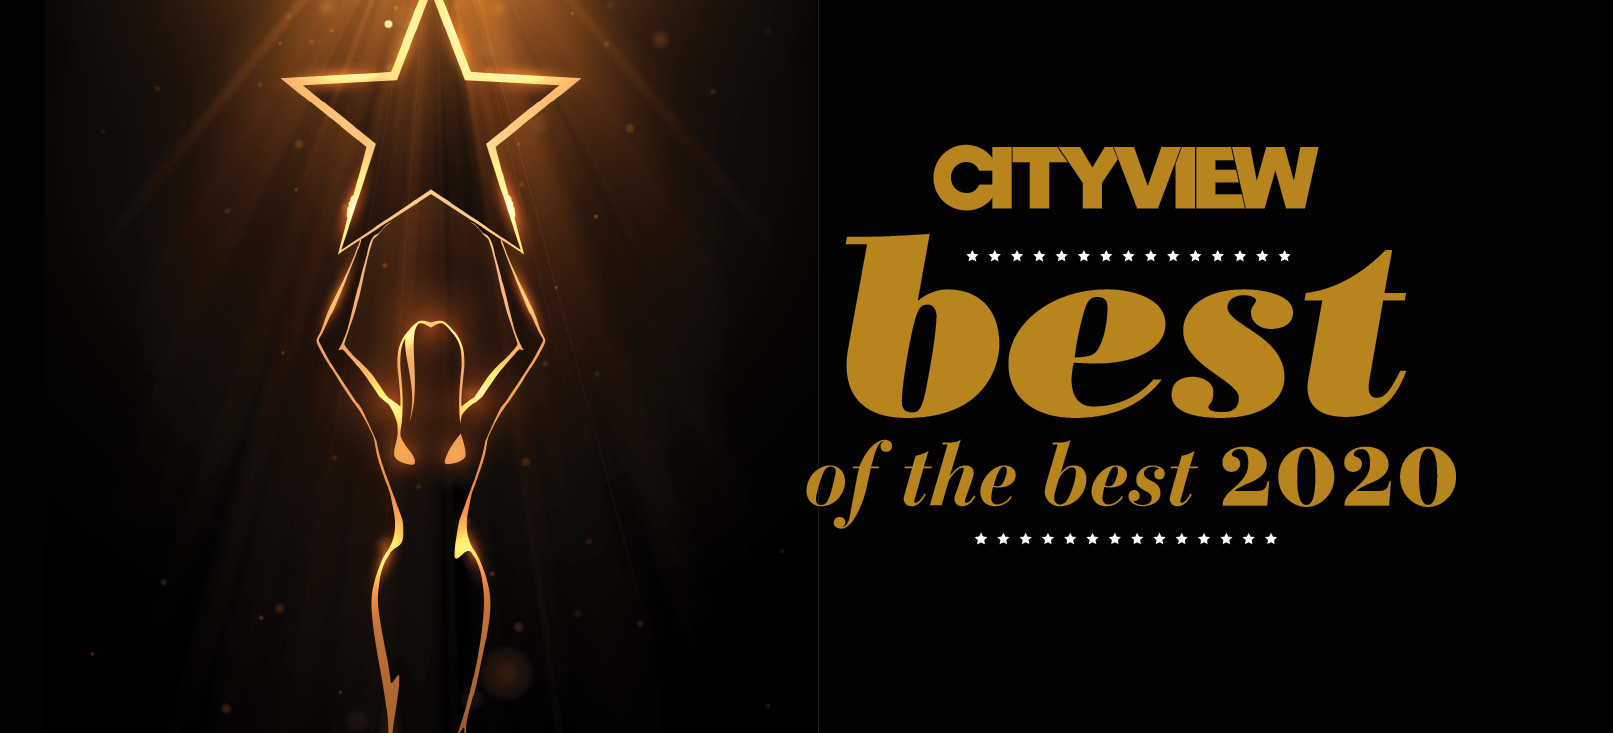 The Best Of The Best 2020 Cityview